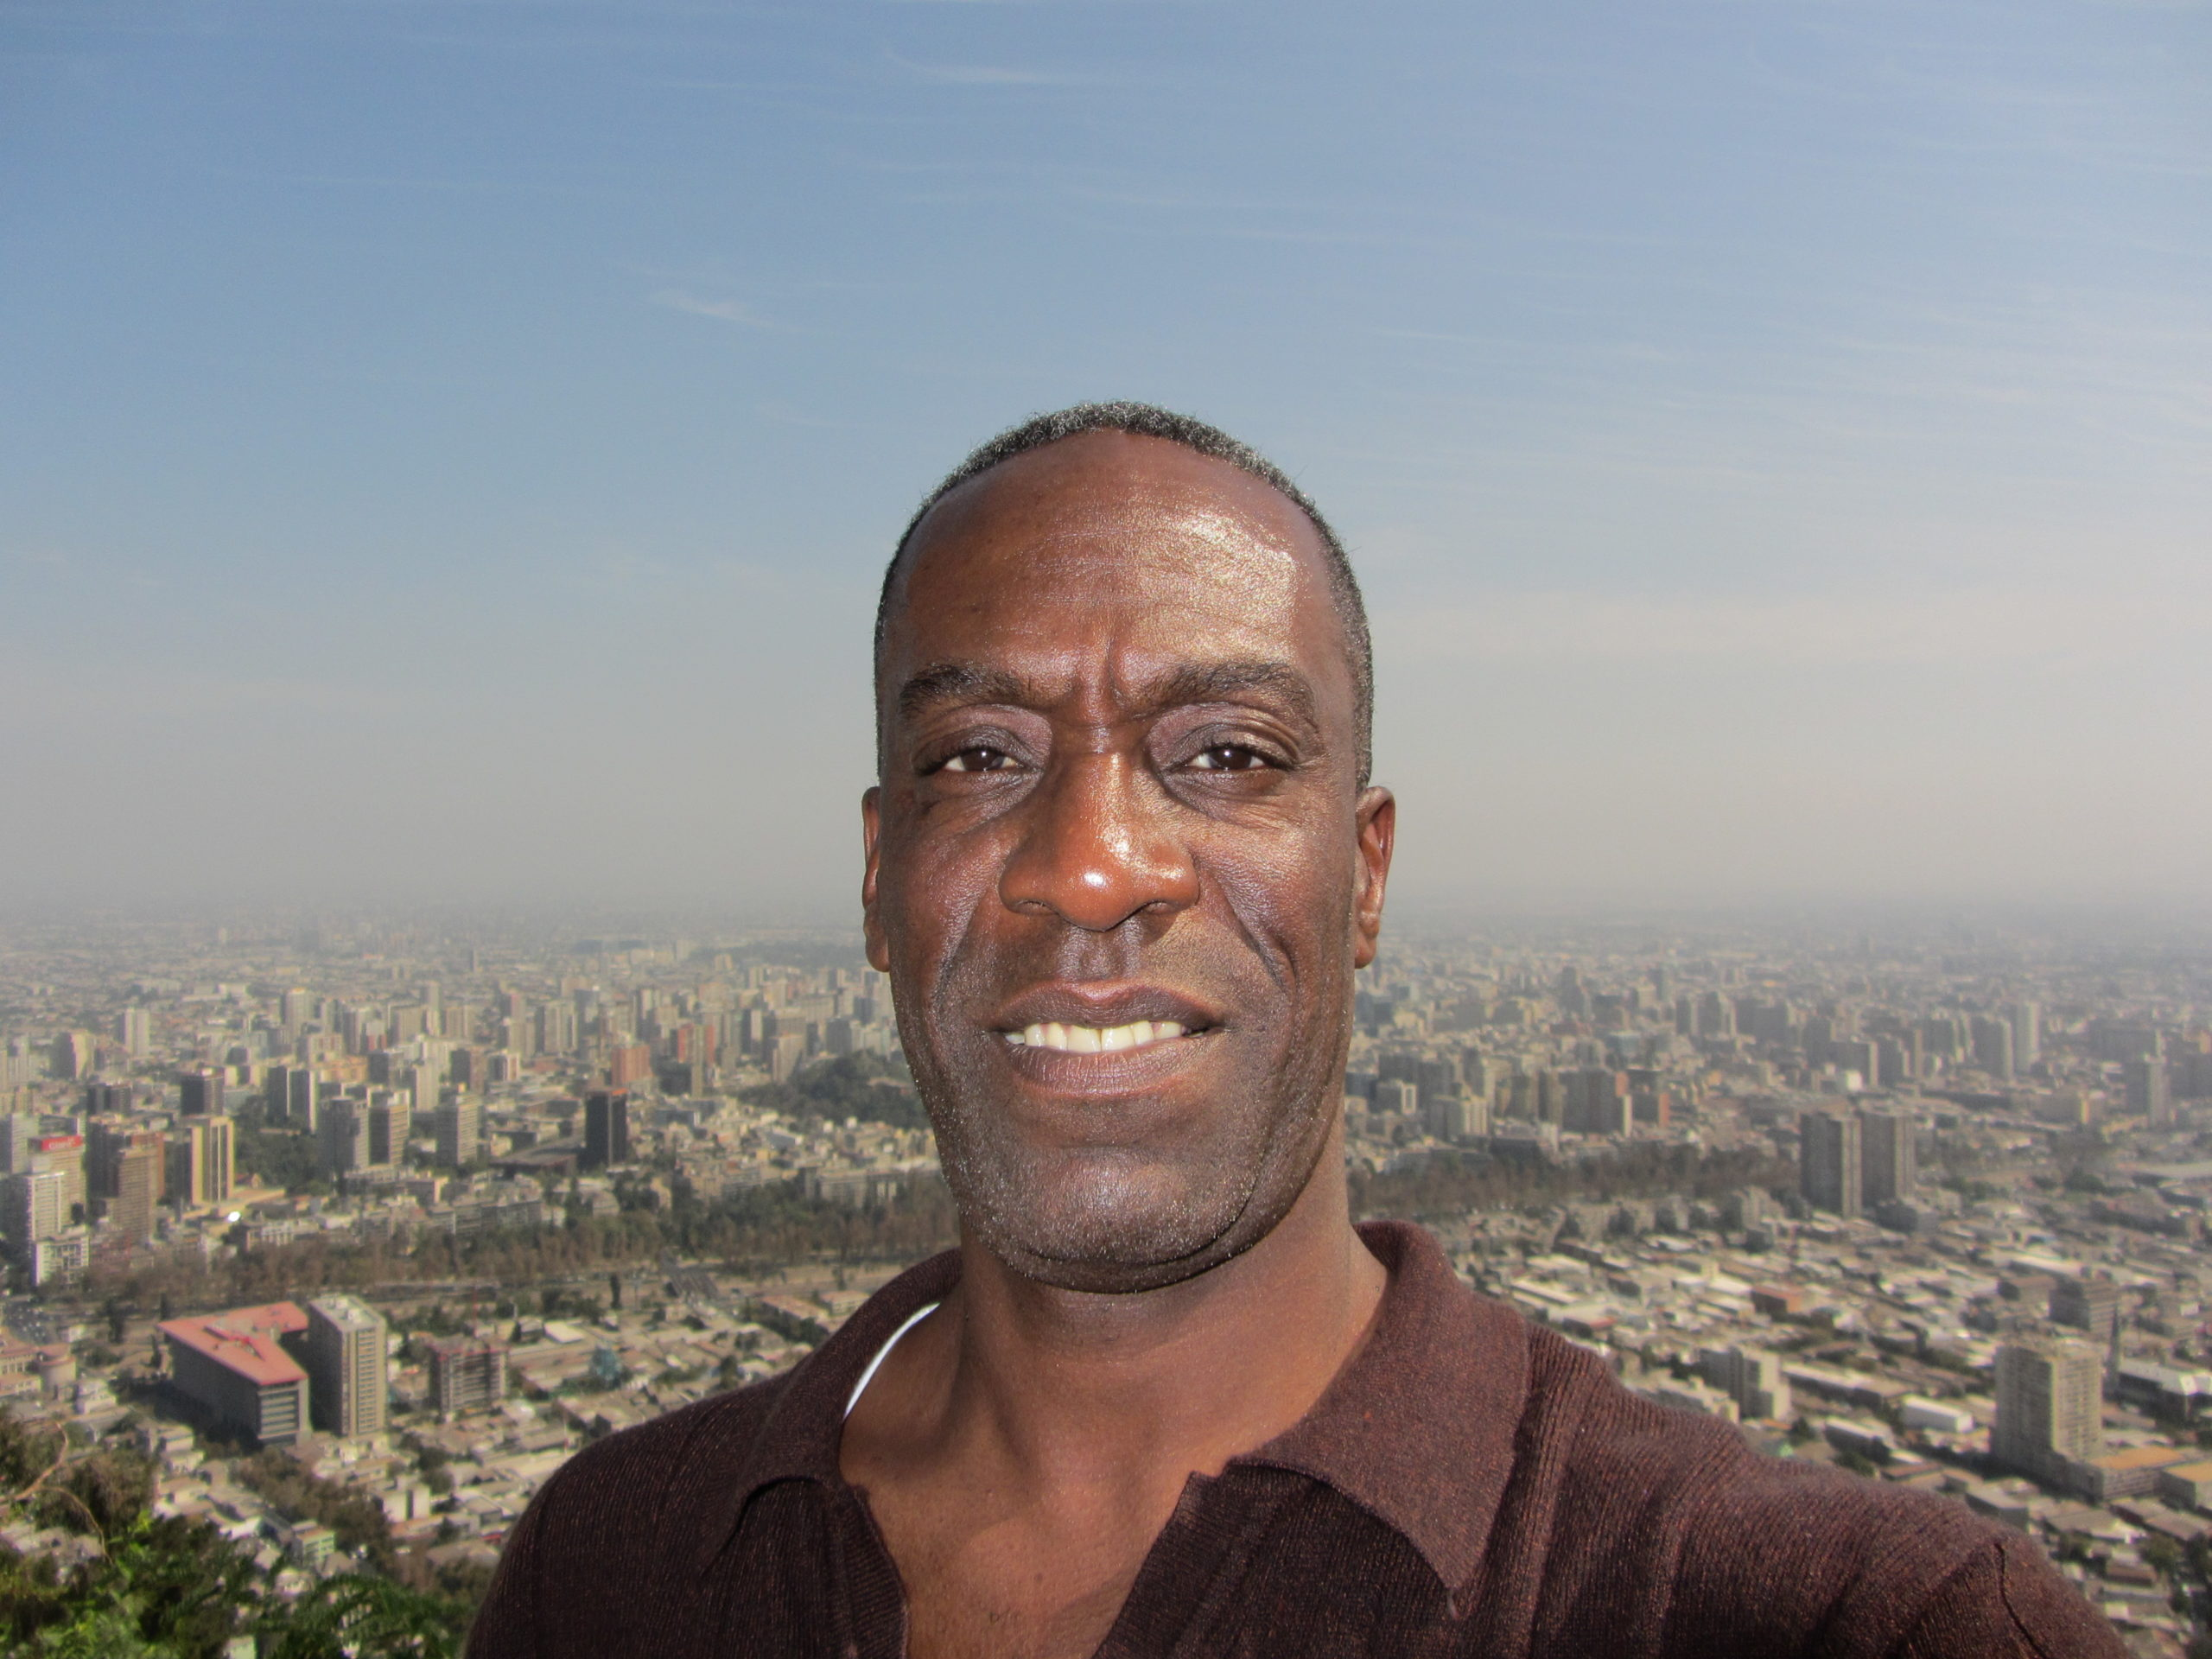 Travel journalist Brian Major takes a selfie with Santiago, Chile in the background